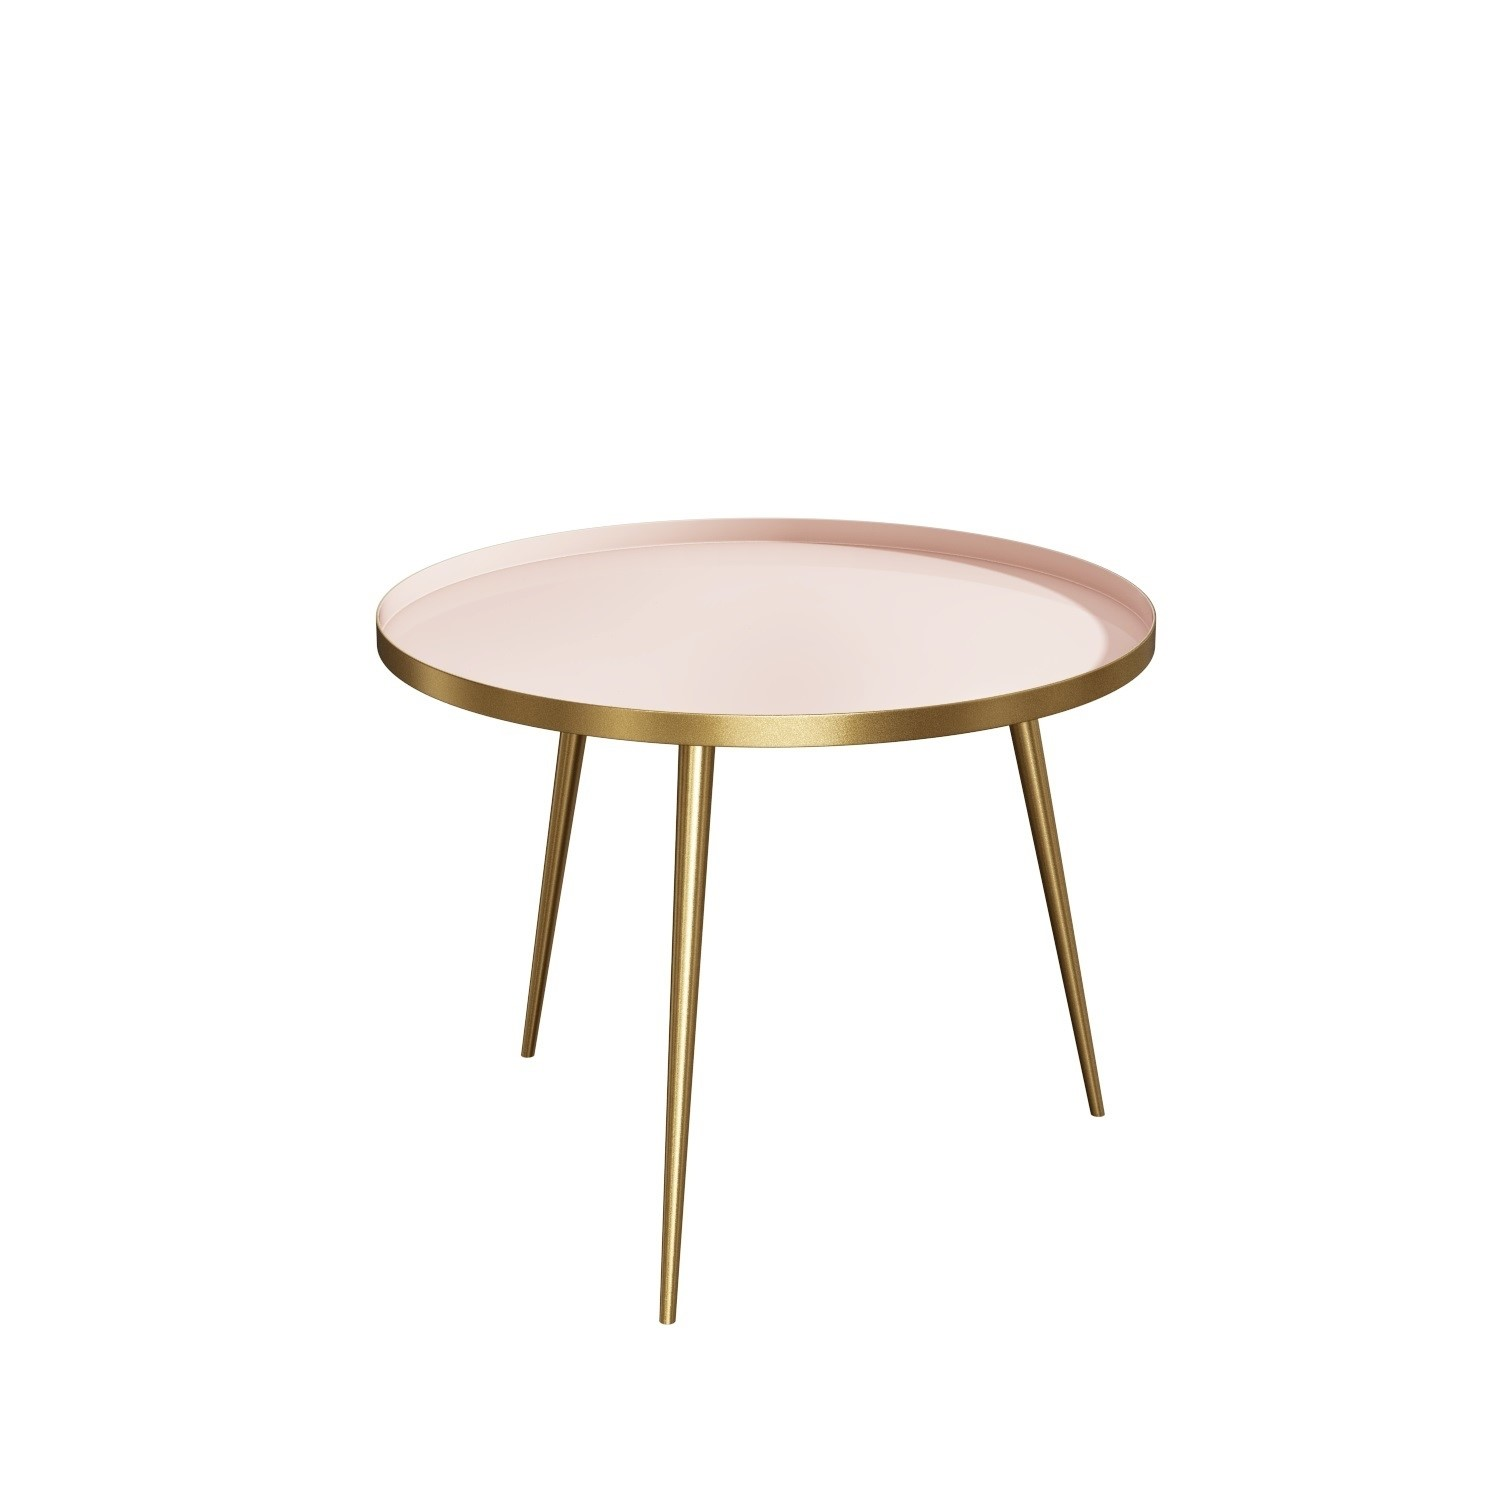 - Gold & Pink Round Coffee Table - Kaisa Furniture123